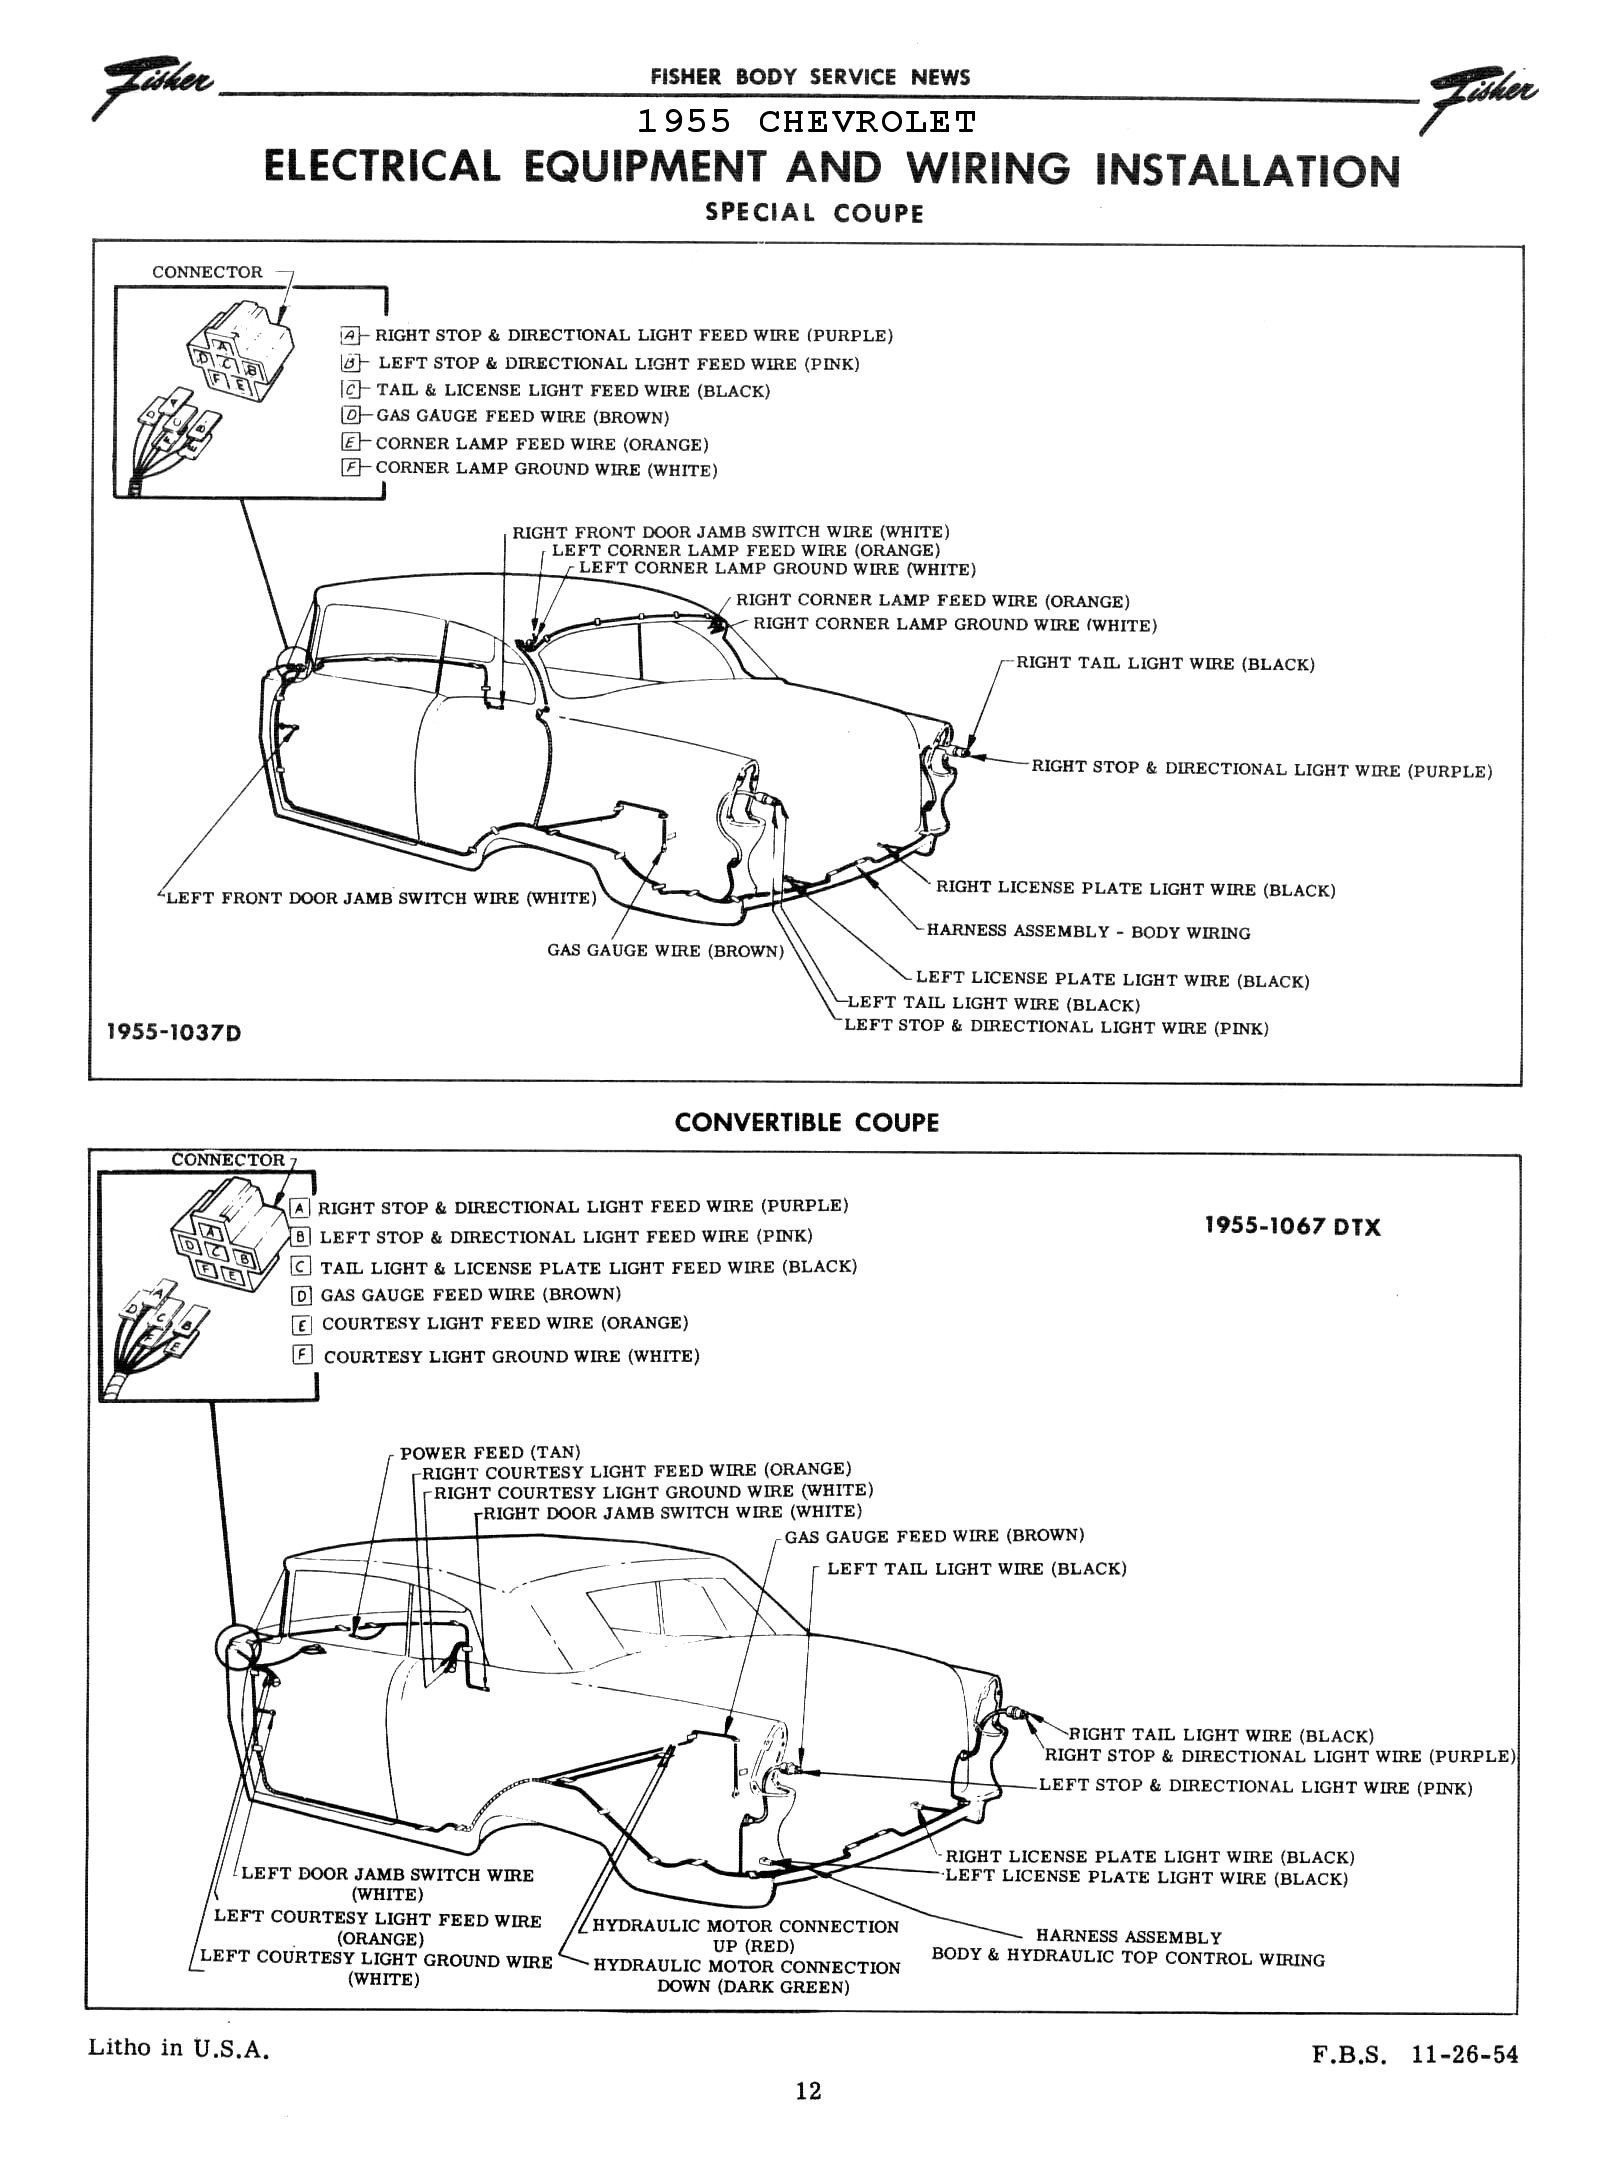 Chevy Wiring Diagrams 2003 Impala Fuel Gauge Diagram 1955 Body 3